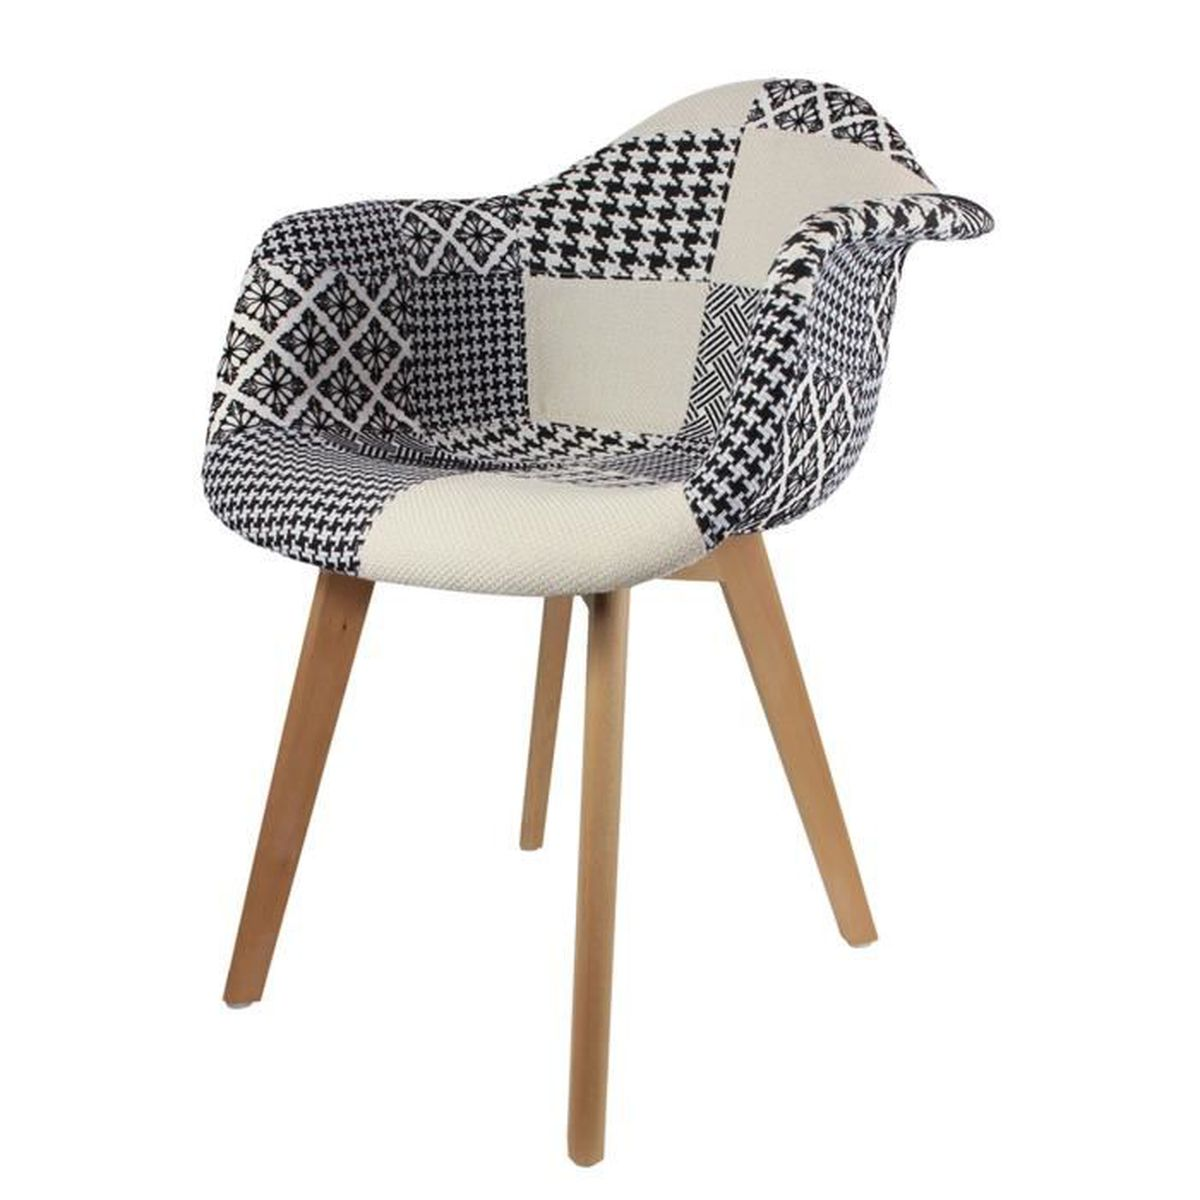 CHAISE Fauteuil Scandinave Patchwork